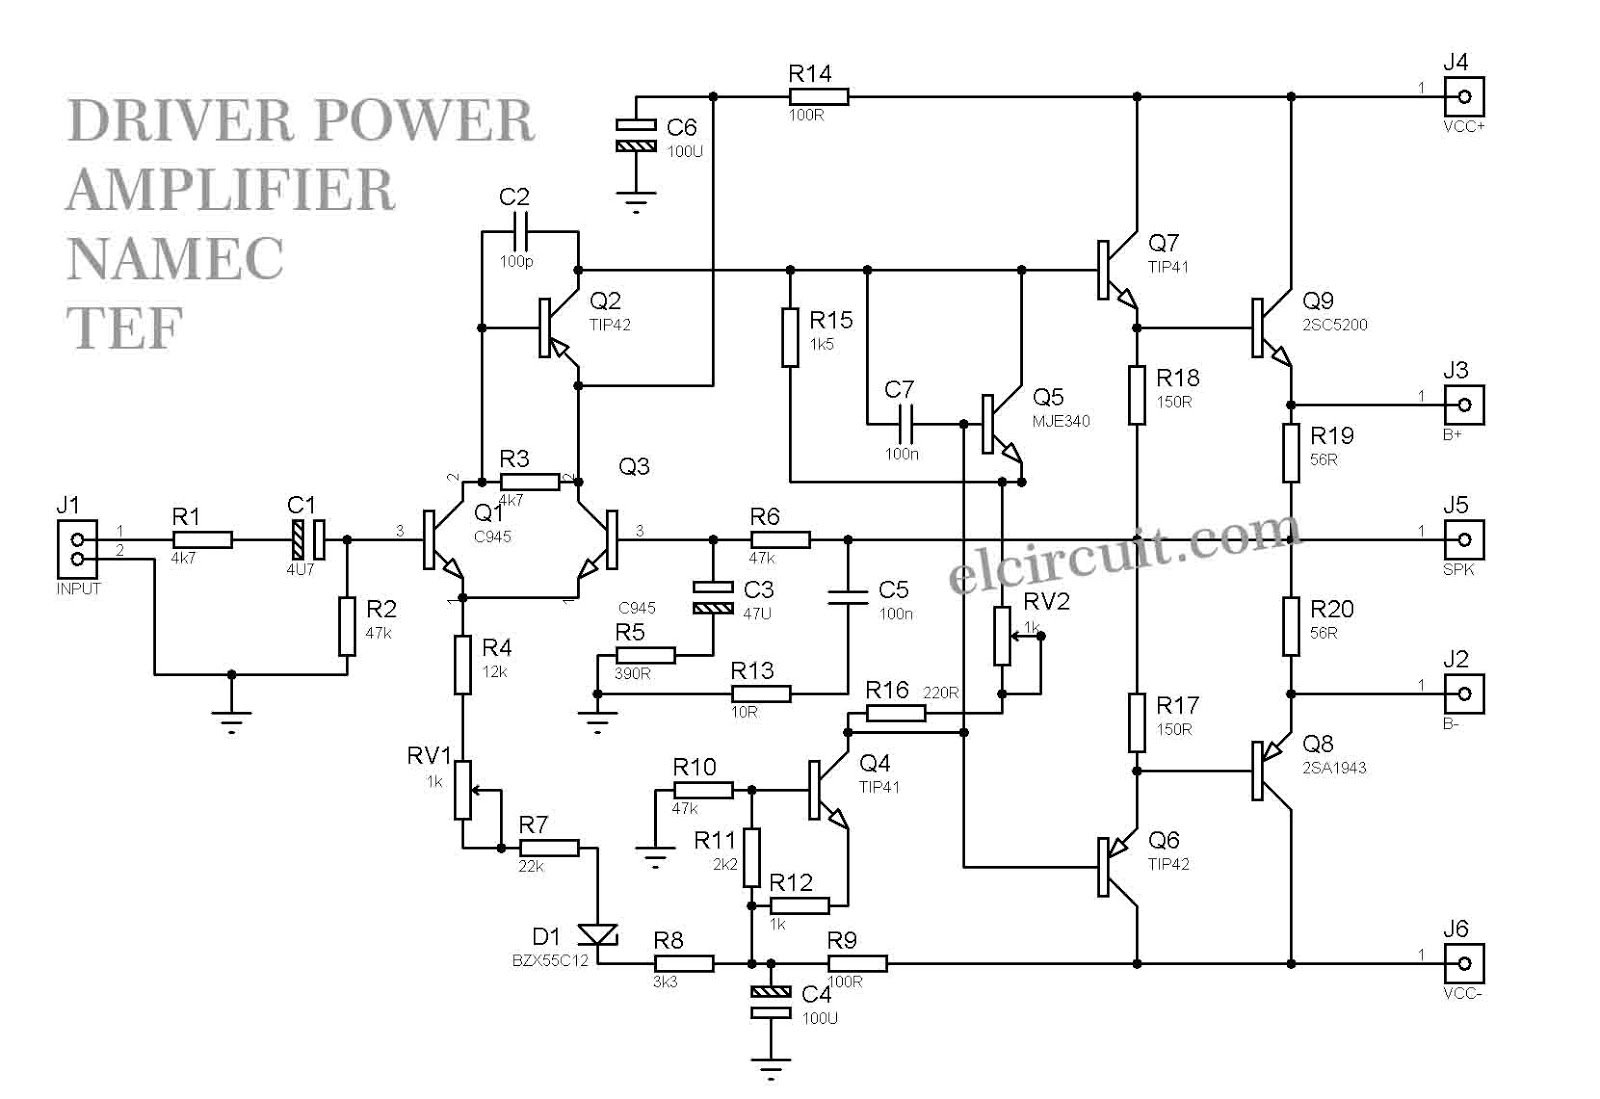 small resolution of circuit diagram schematic driver power amplifier namec tef